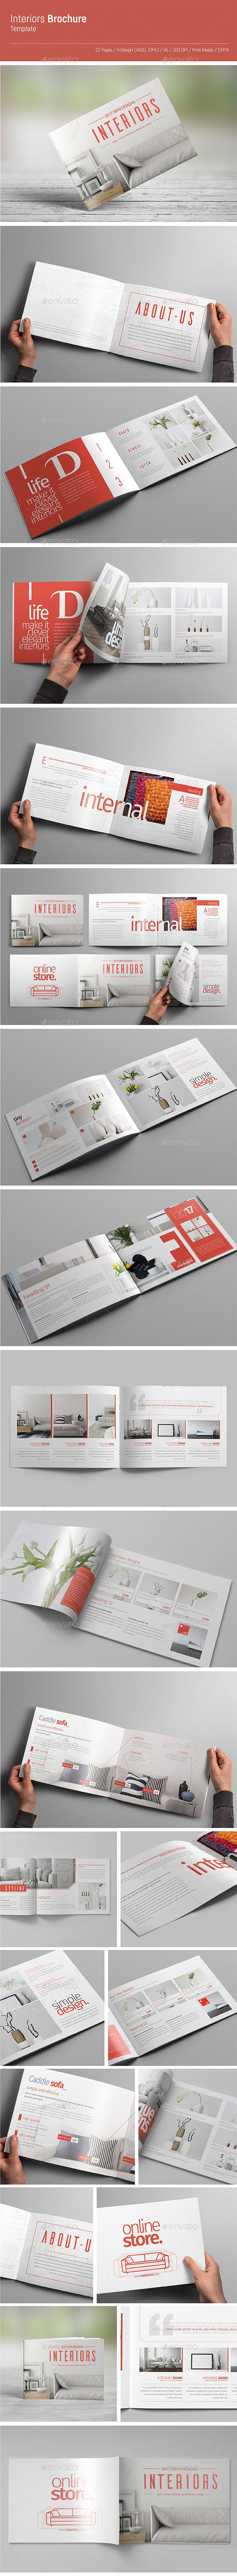 A5 Booklet - Catalogue Template InDesign INDD. Download here: http://graphicriver.net/item/a5-booklet-catalogue/16006713?ref=ksioks